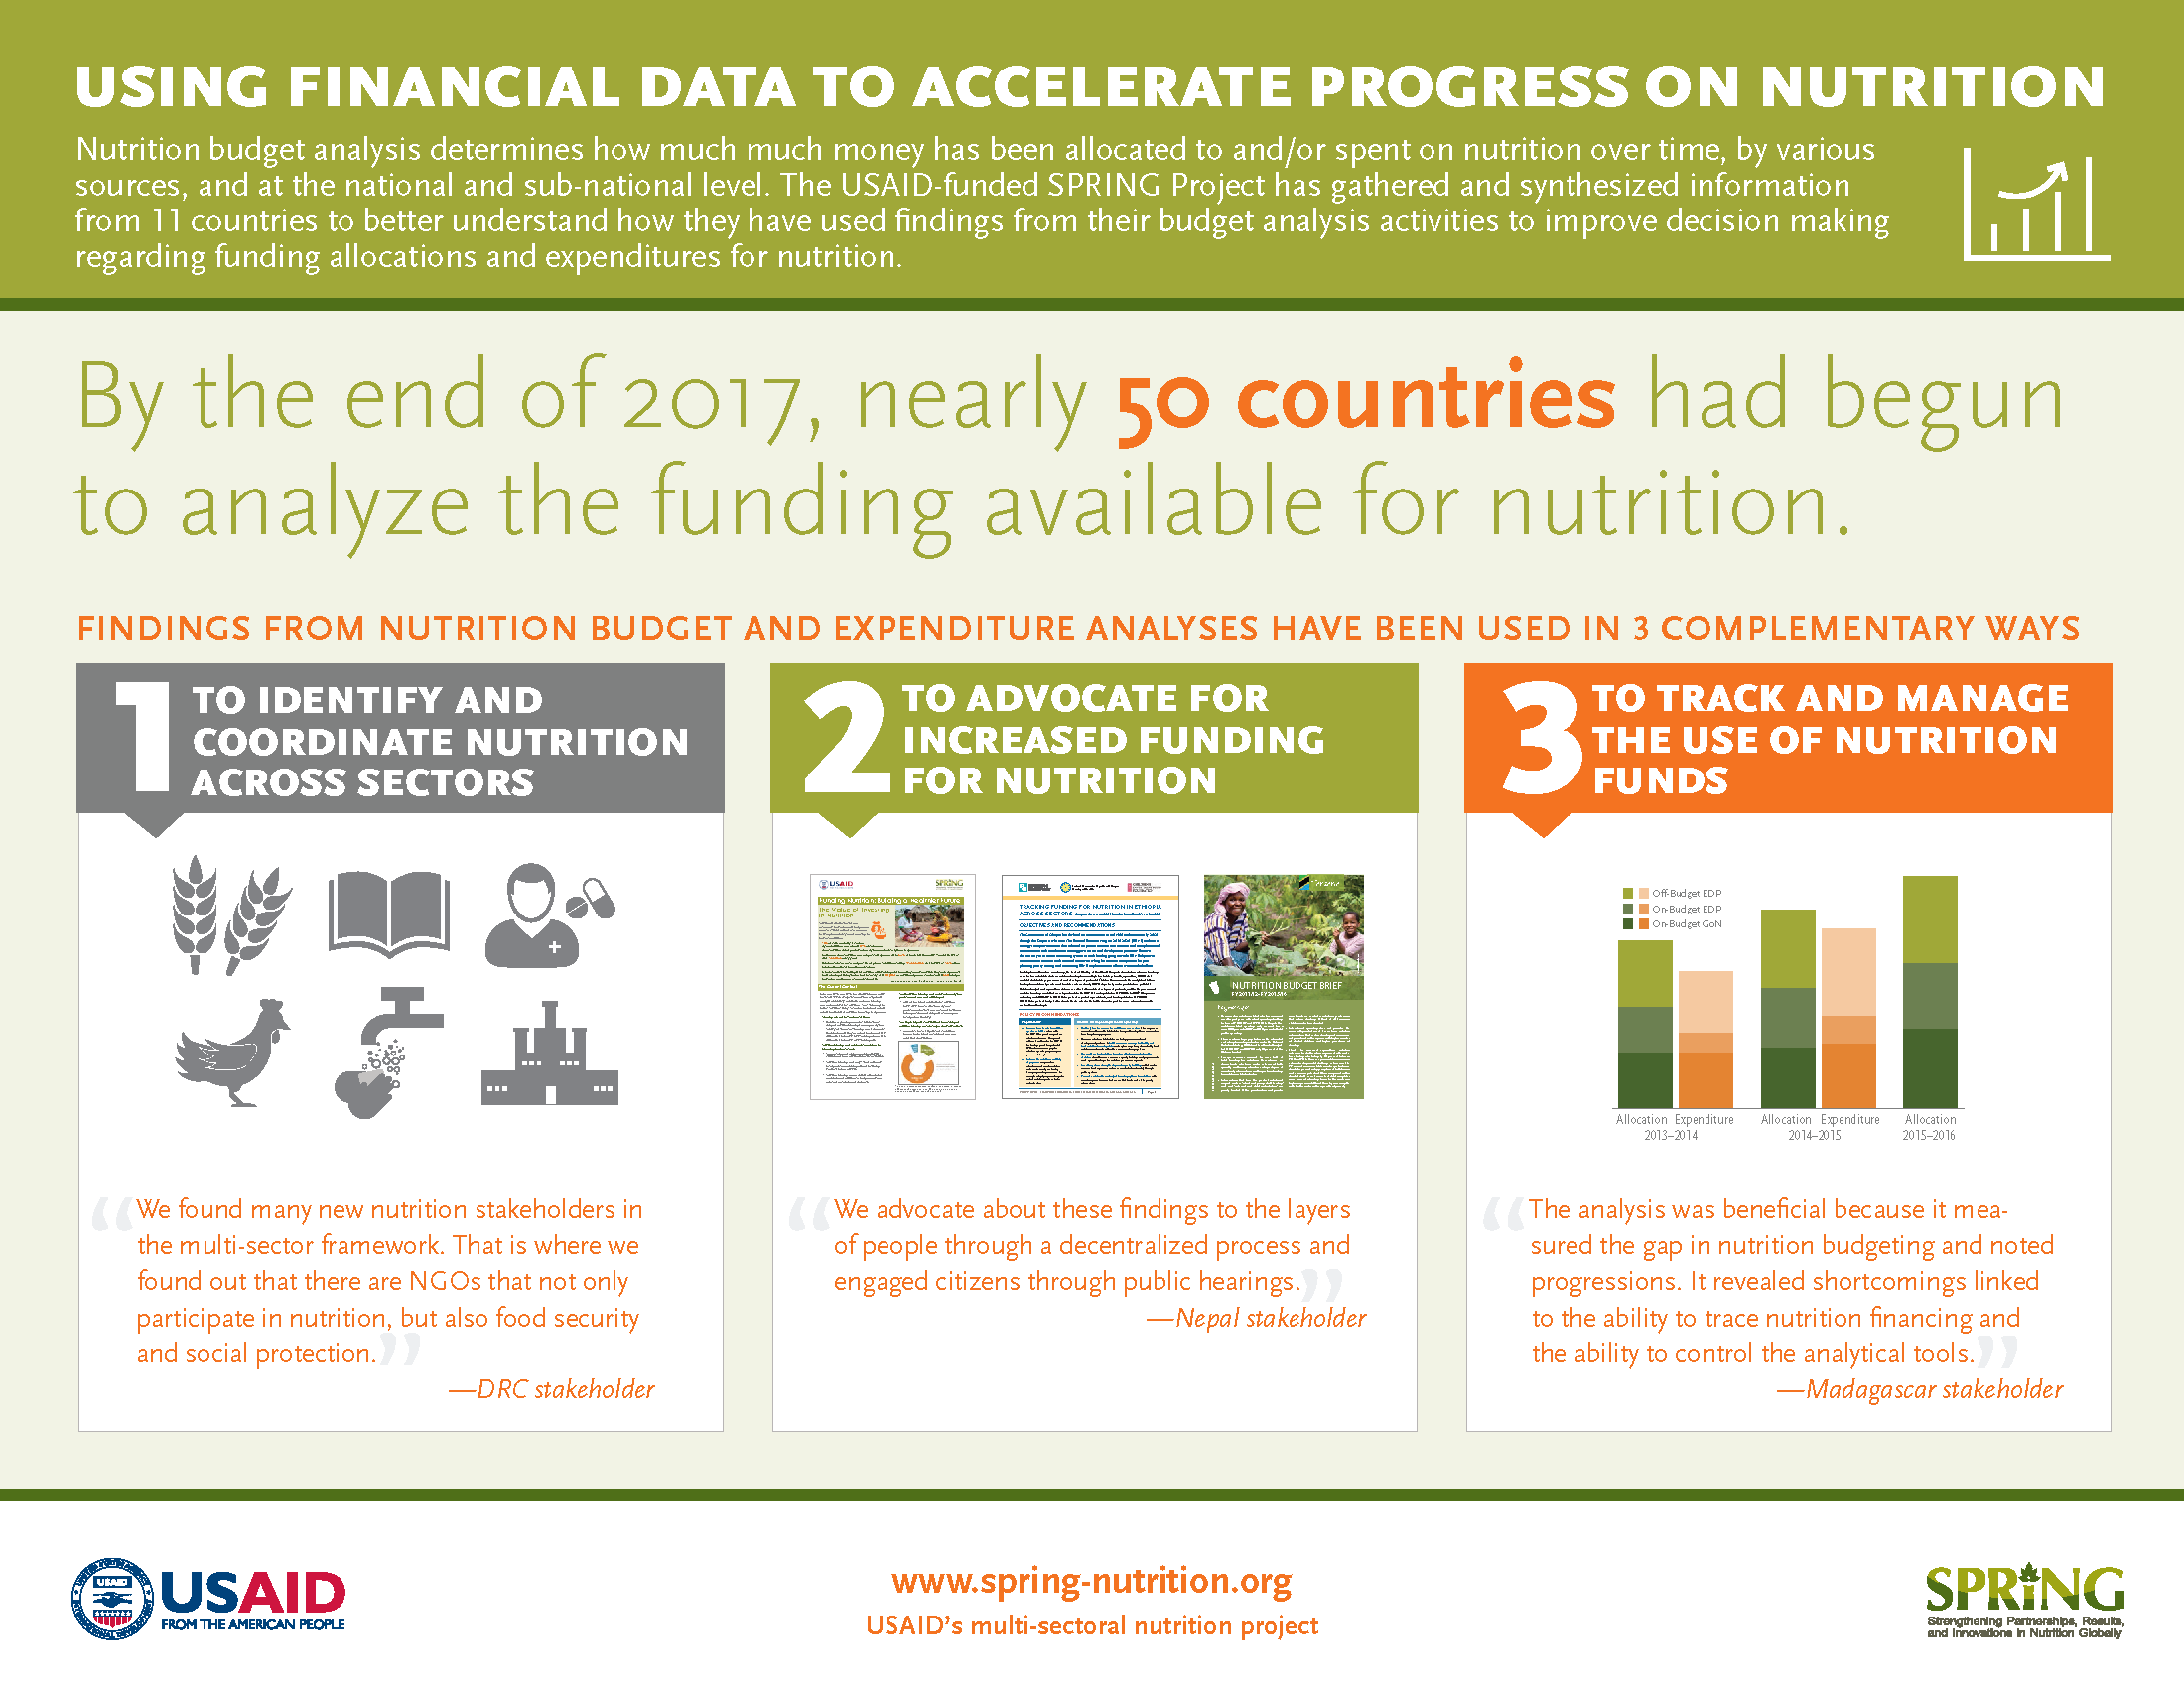 Infographic summarizing findings from nutrition budget analysis interviews.